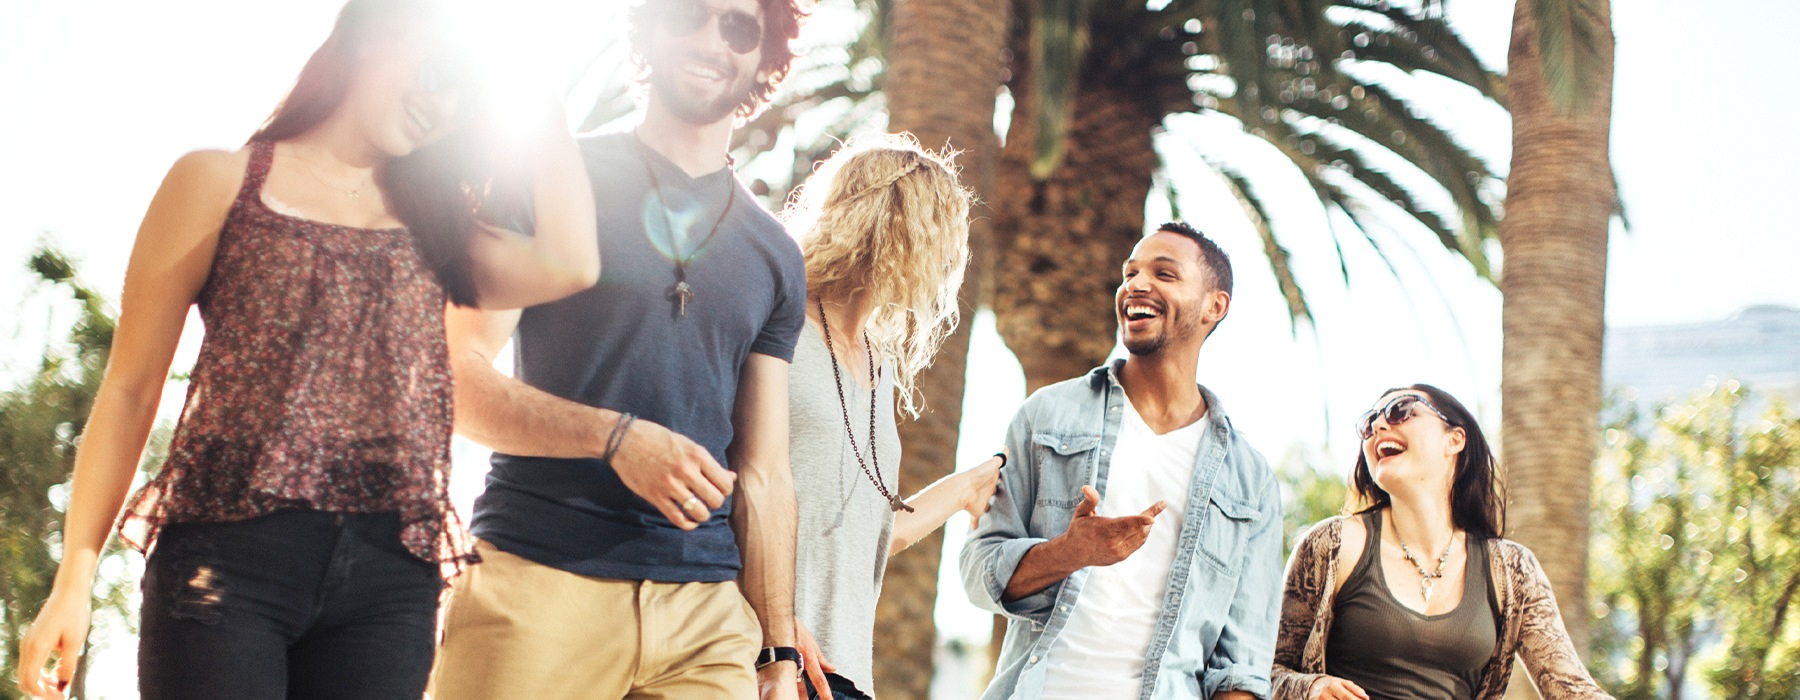 A group of friends hanging out and laughing surrounded by palm trees